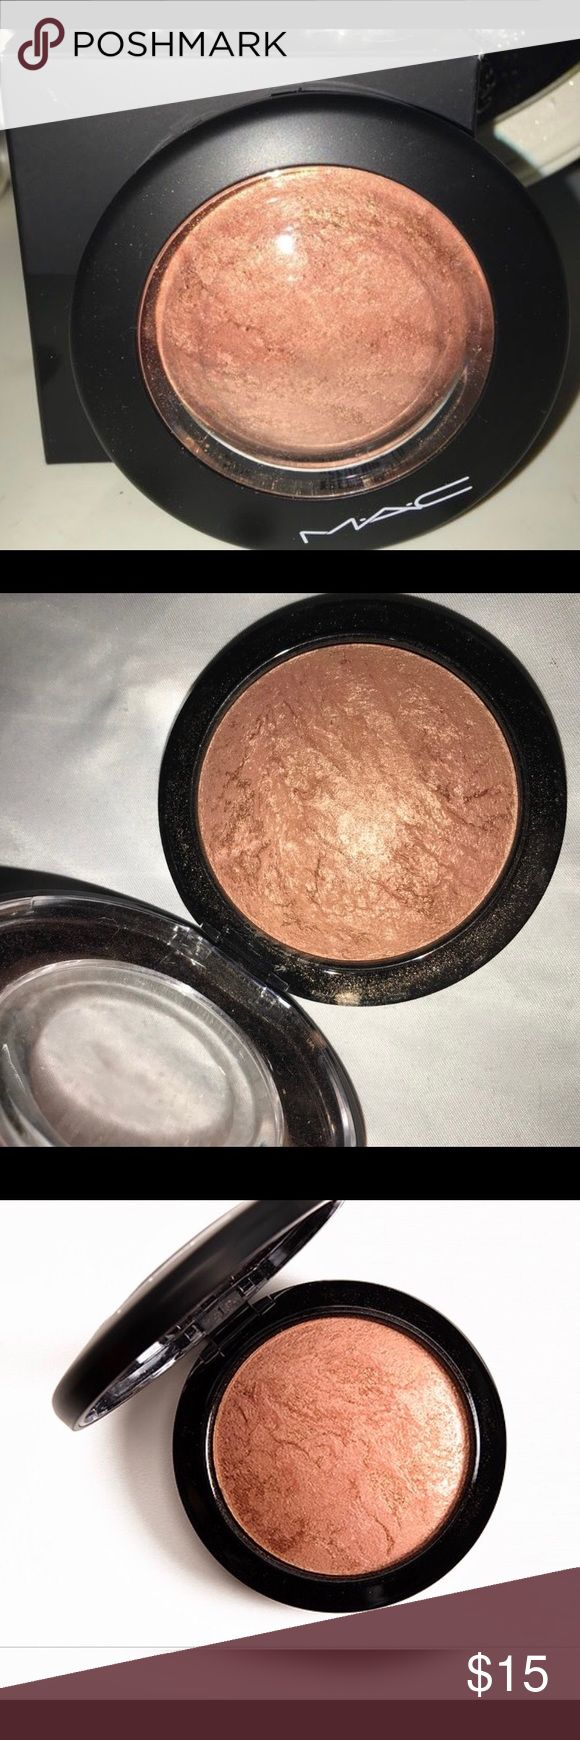 Mac cheeky bronze mineralize skinfinish Refurbished/ pre loved highlighter Soft coral with golden finish MAC Cosmetics Makeup Bronzer